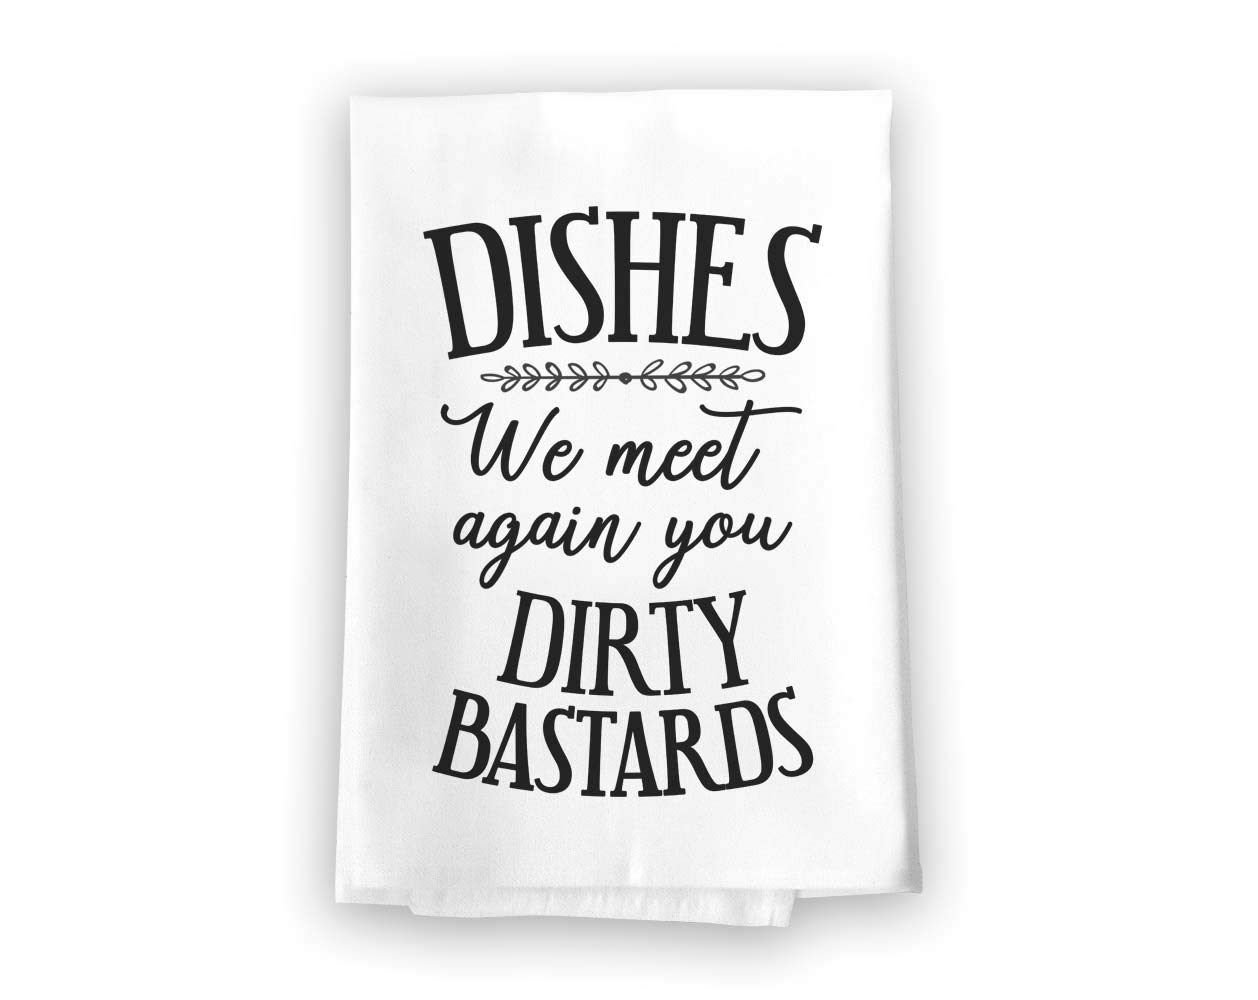 27 x 27 Inches Highly Absorbent Multi-Purpose Kitchen Dish Towel Honey Dew Gifts Dishes We Meet Again Flour Sack Towel 100/% Cotton